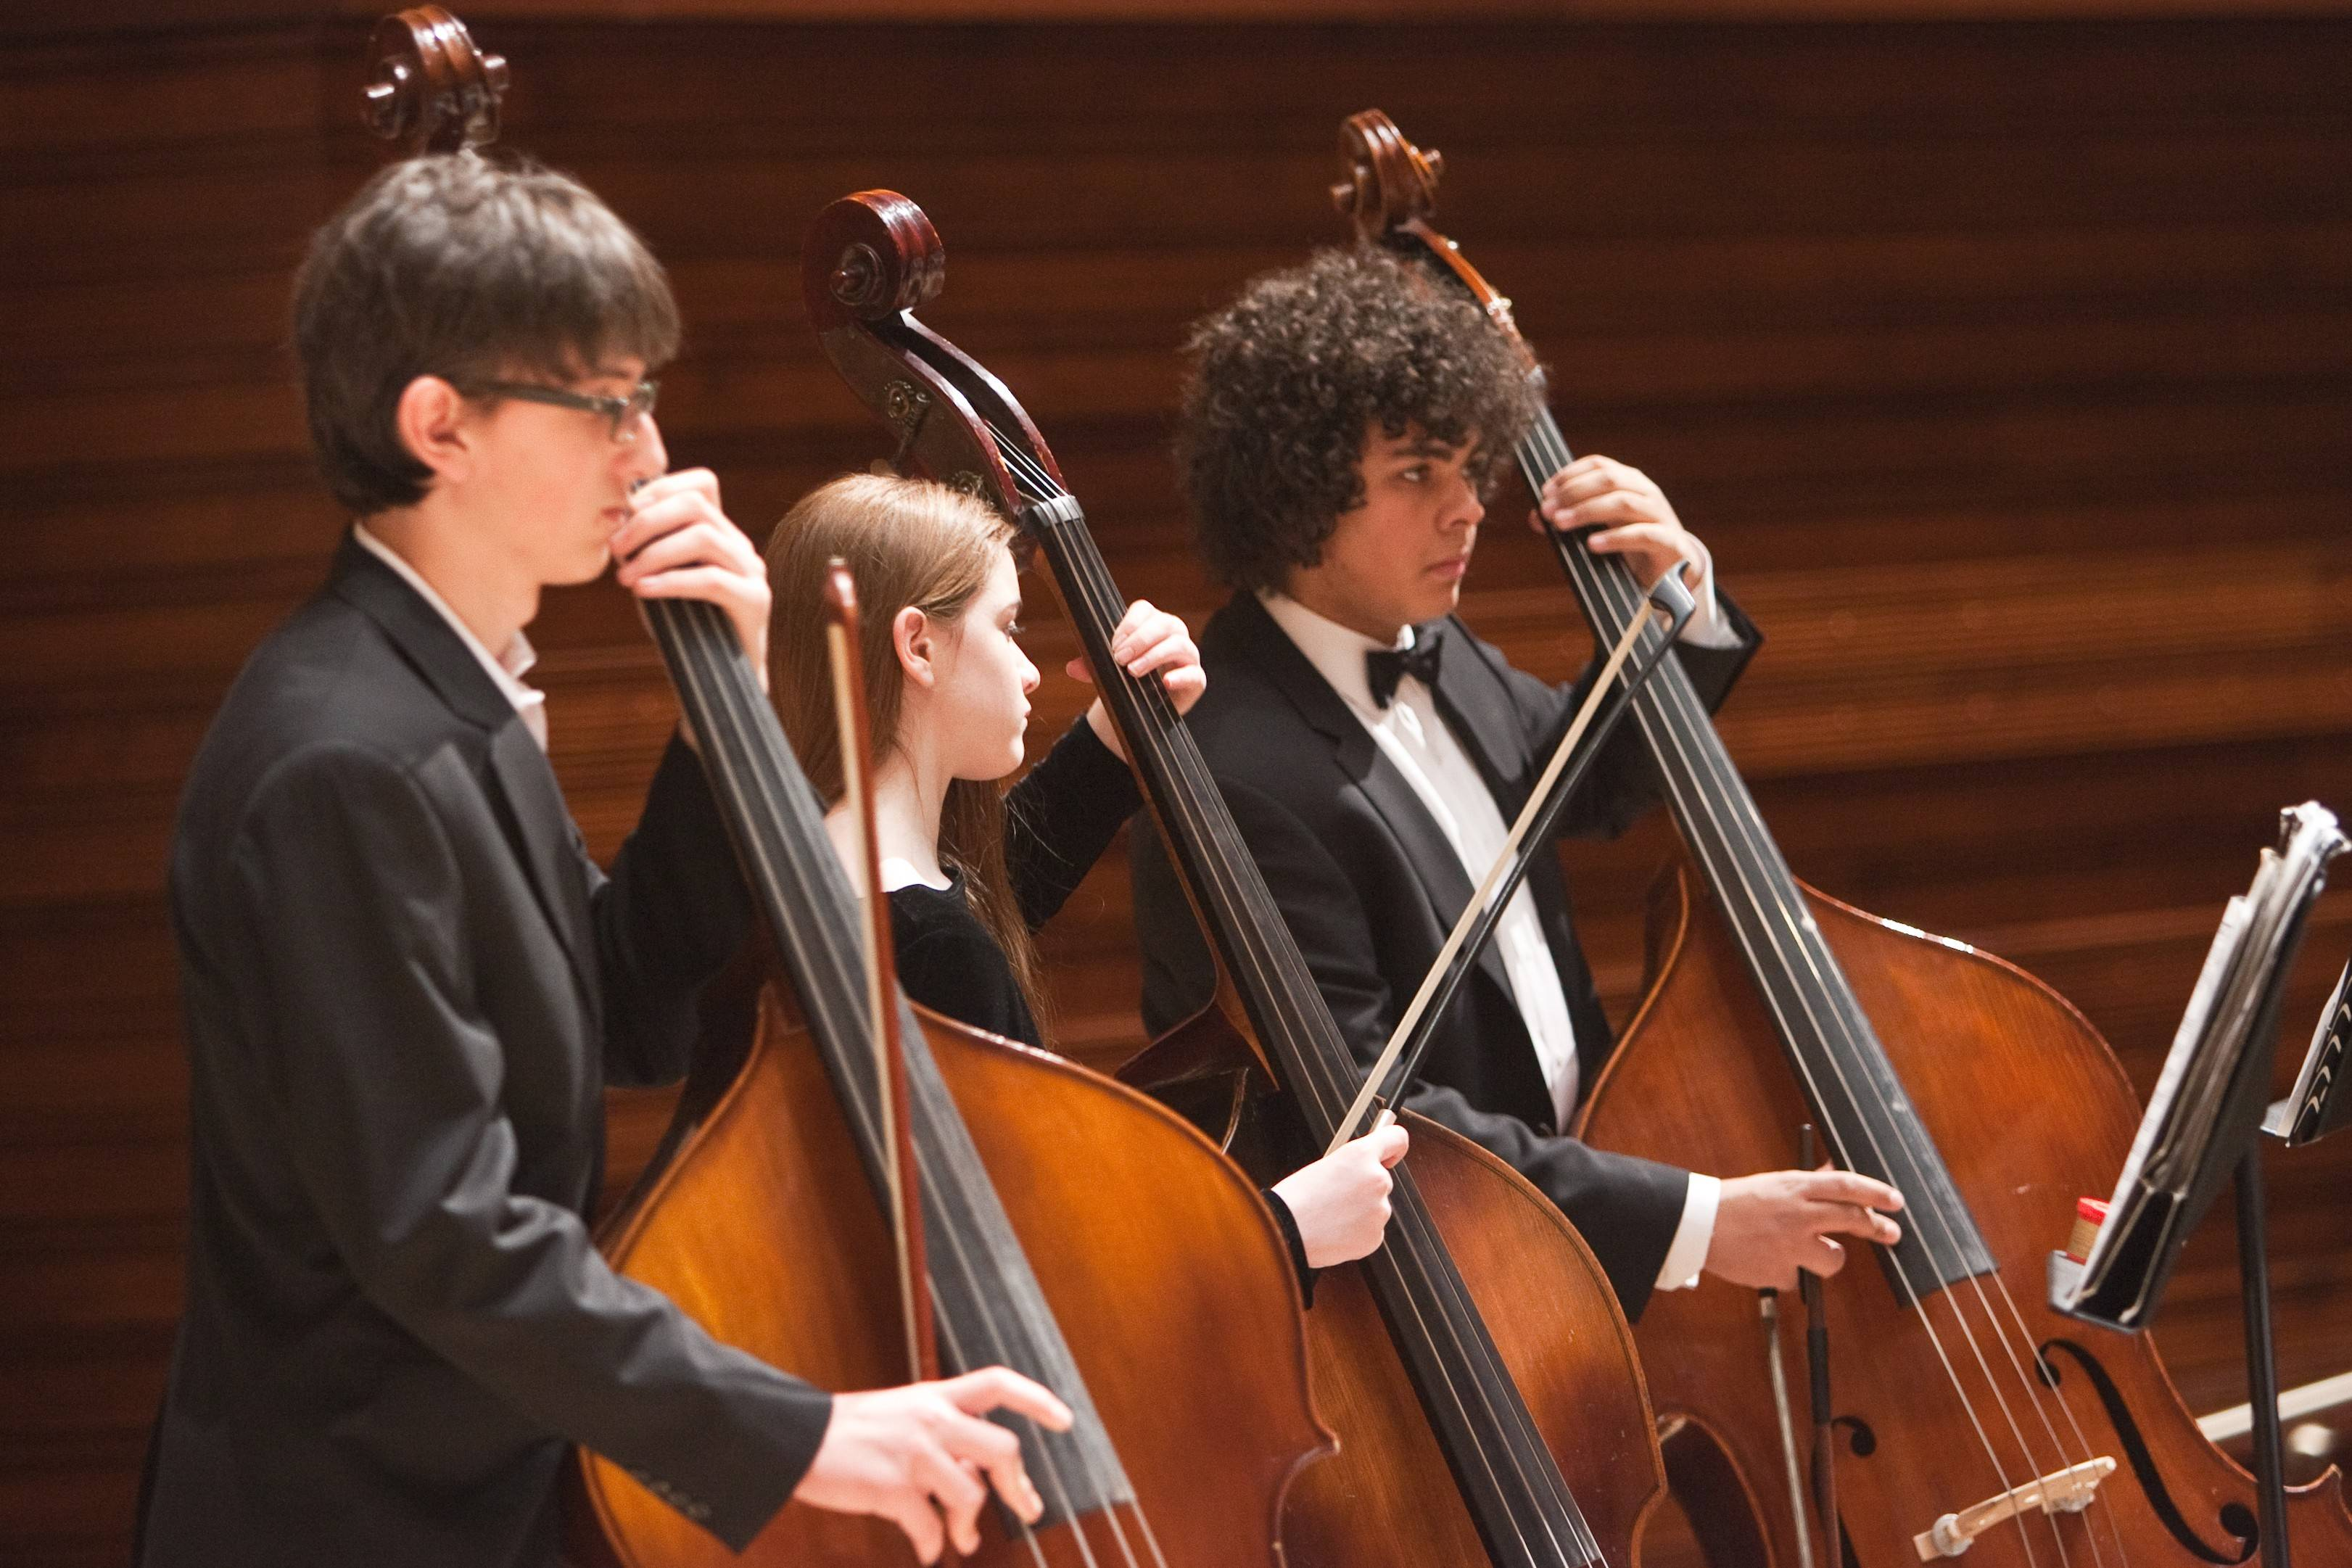 Performing on basses are, from left, Ceazar DePaoli, Rachel Shapley and Benjamin Alston.